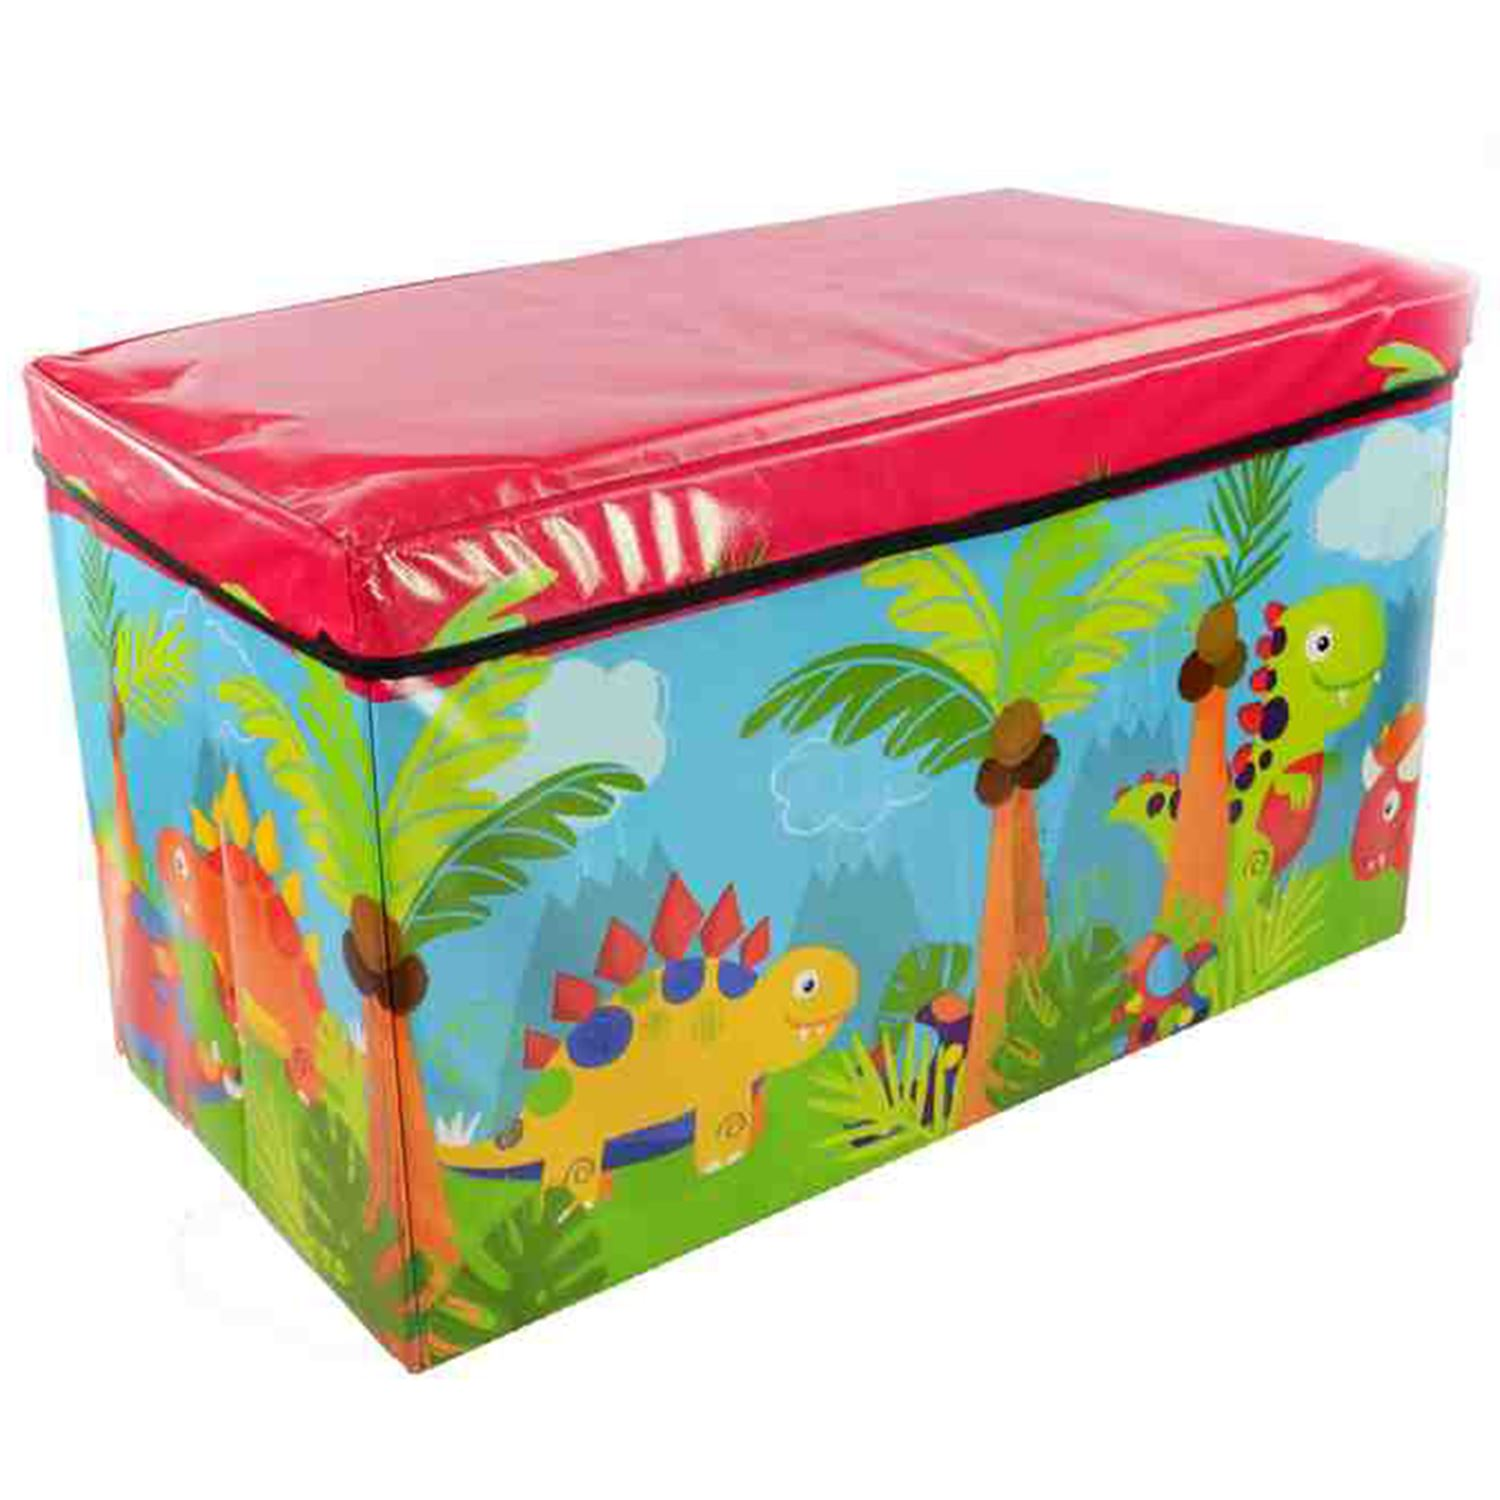 Kids Toy Storage Box Childrens Large 3 Stacking Bear Design Boxes, Great for Books, Reducing Clutter Perfect for Toys, Games, Books Clothes Unique, Decorative Toy Box Chest Brown Size 45x25x75cm. £ Prime. More buying choices. £ (2 new offers) Eligible for FREE UK Delivery.